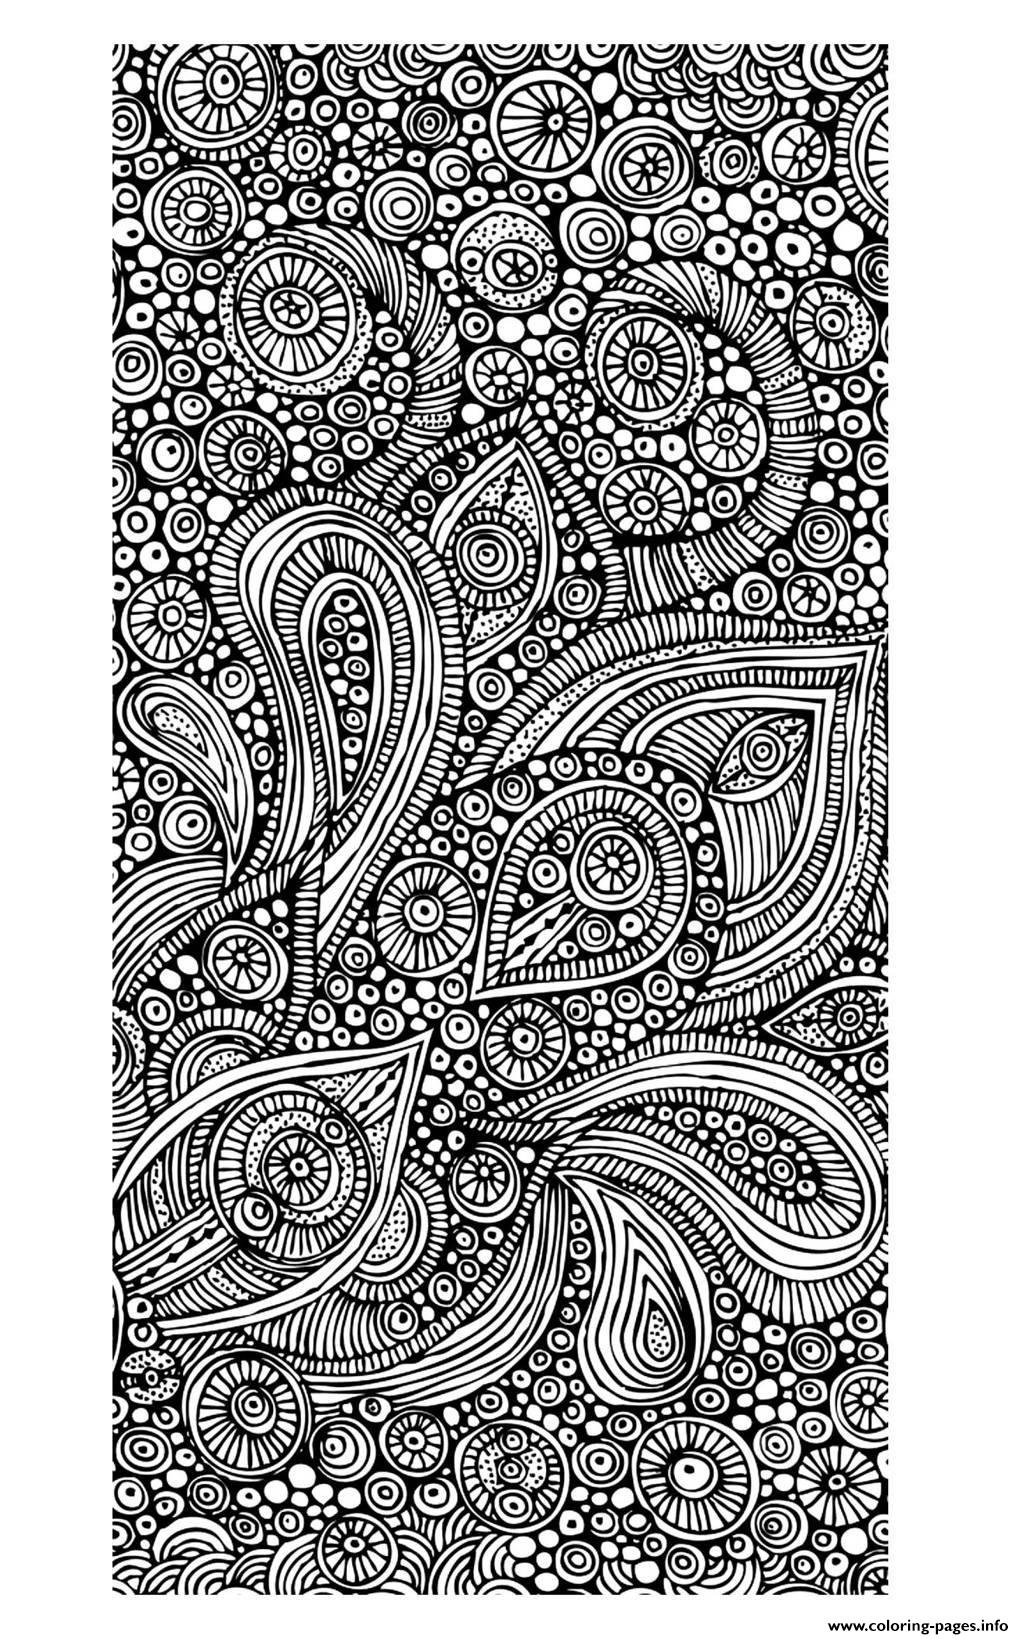 free zen coloring pages coloring pages zen free download on clipartmag zen coloring free pages